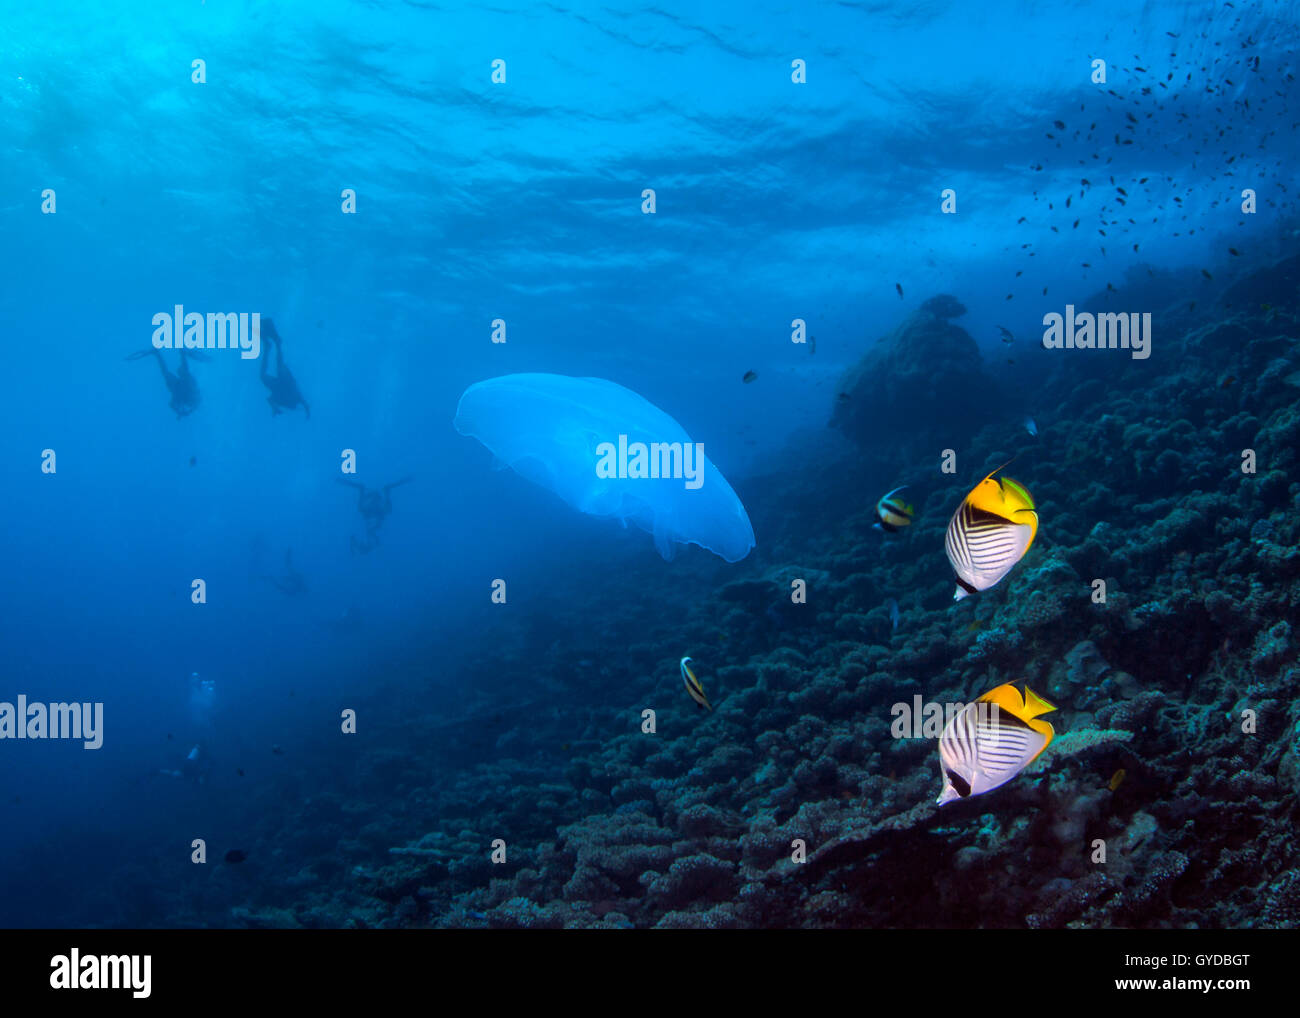 Seascape of jellyfish and raccoon Butterllyfish on coral reef with divers in silhouette in blue water background. Red Sea. Stock Photo